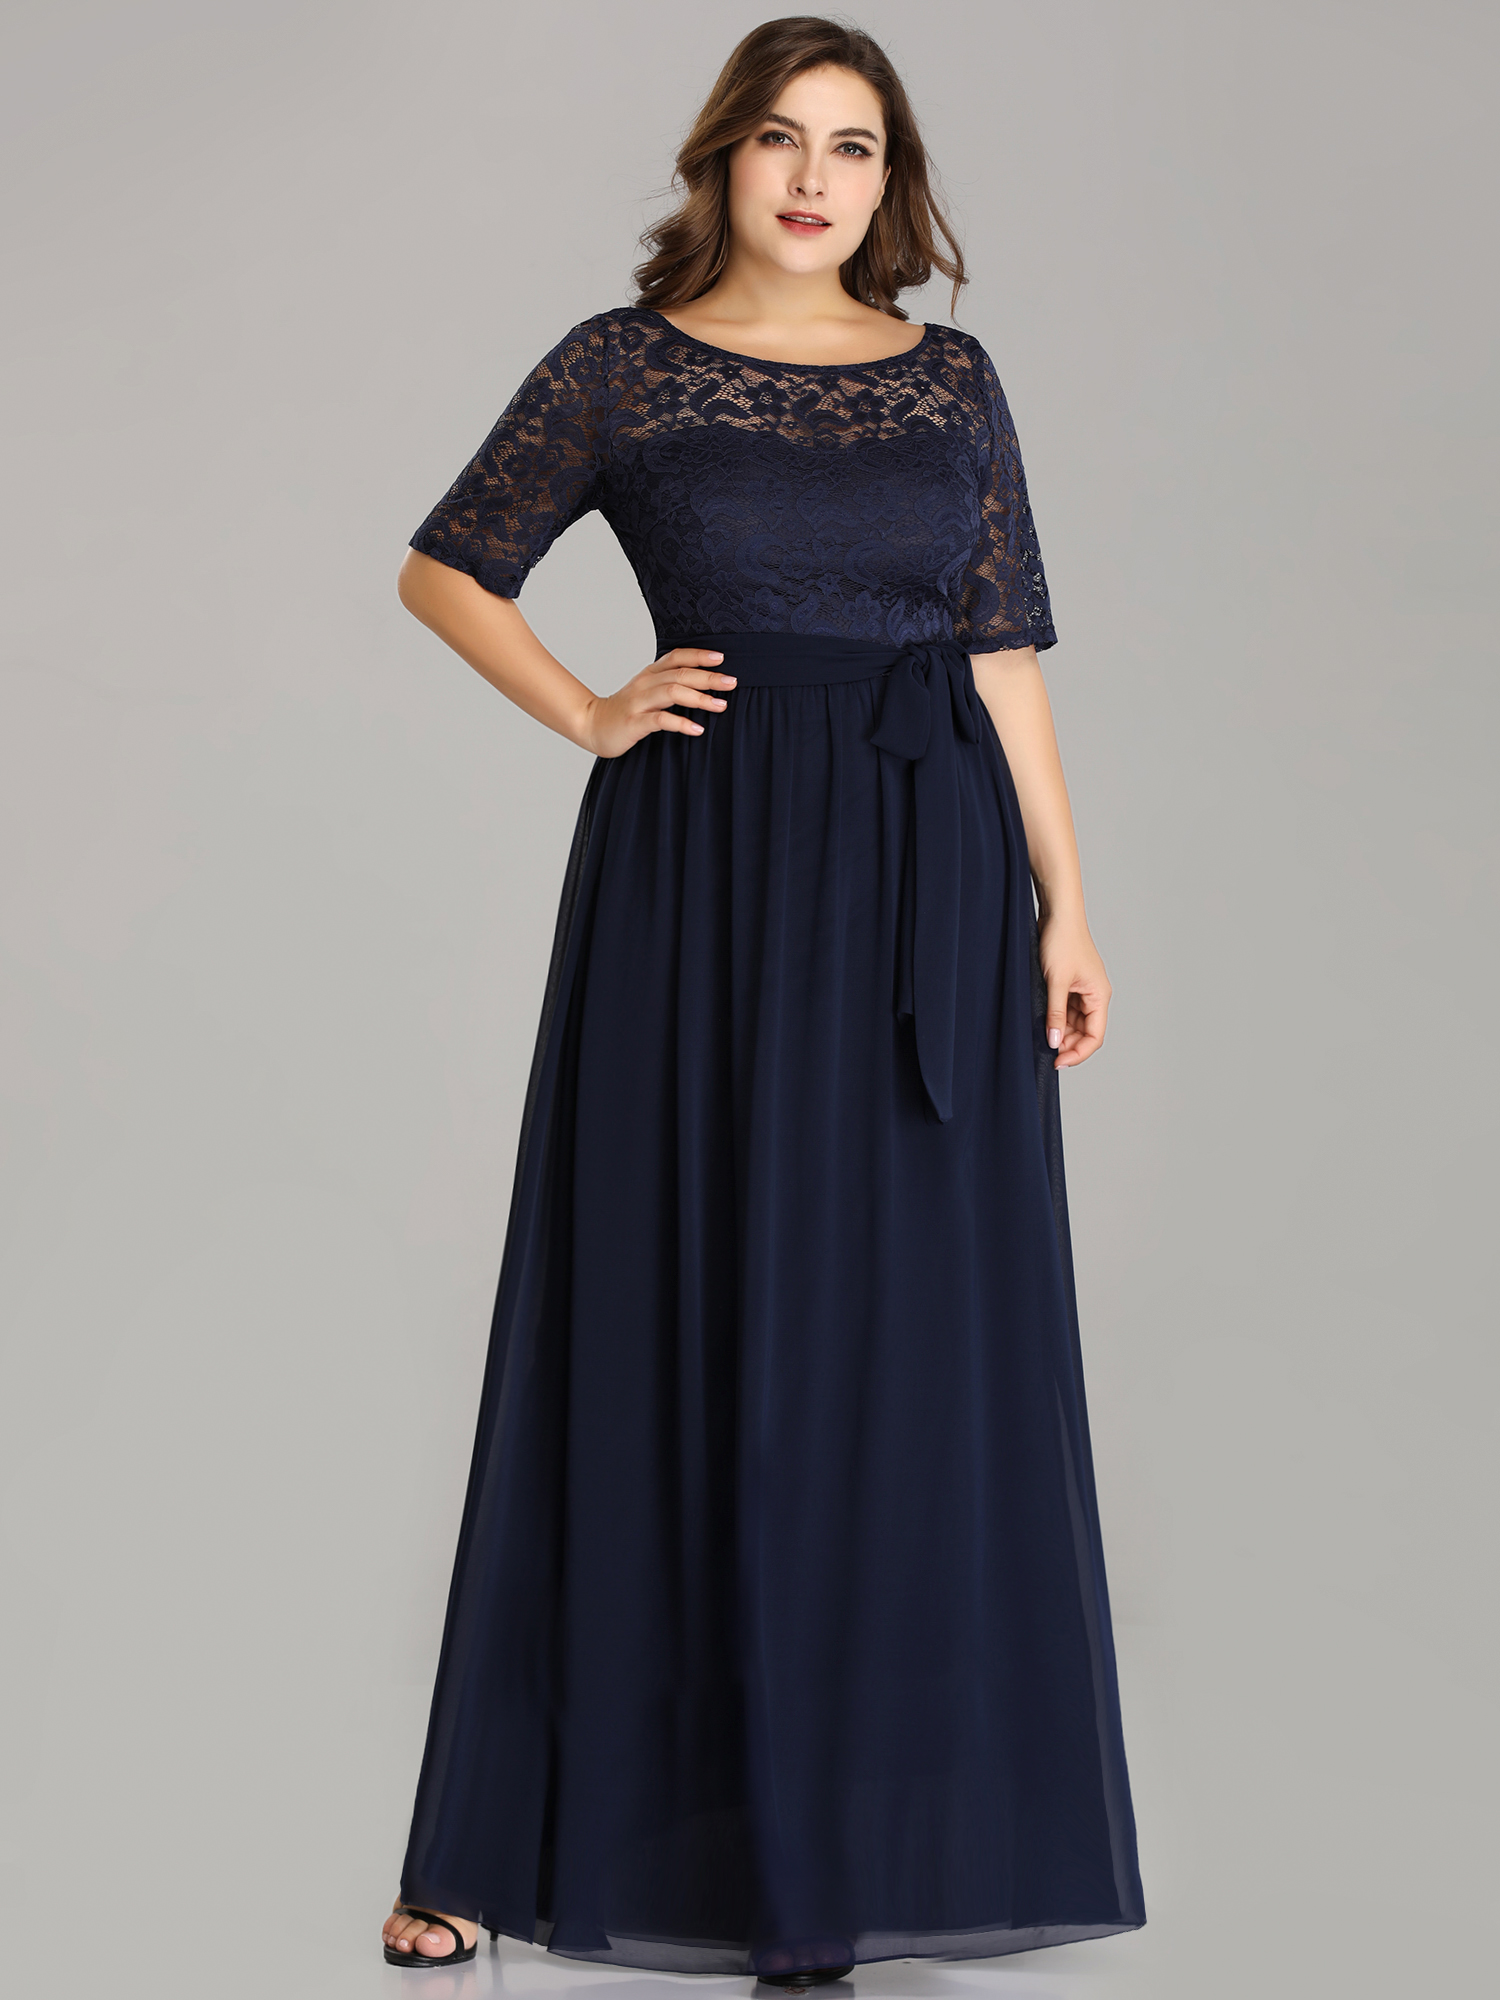 Gowns Plus Size Dresses - Sears